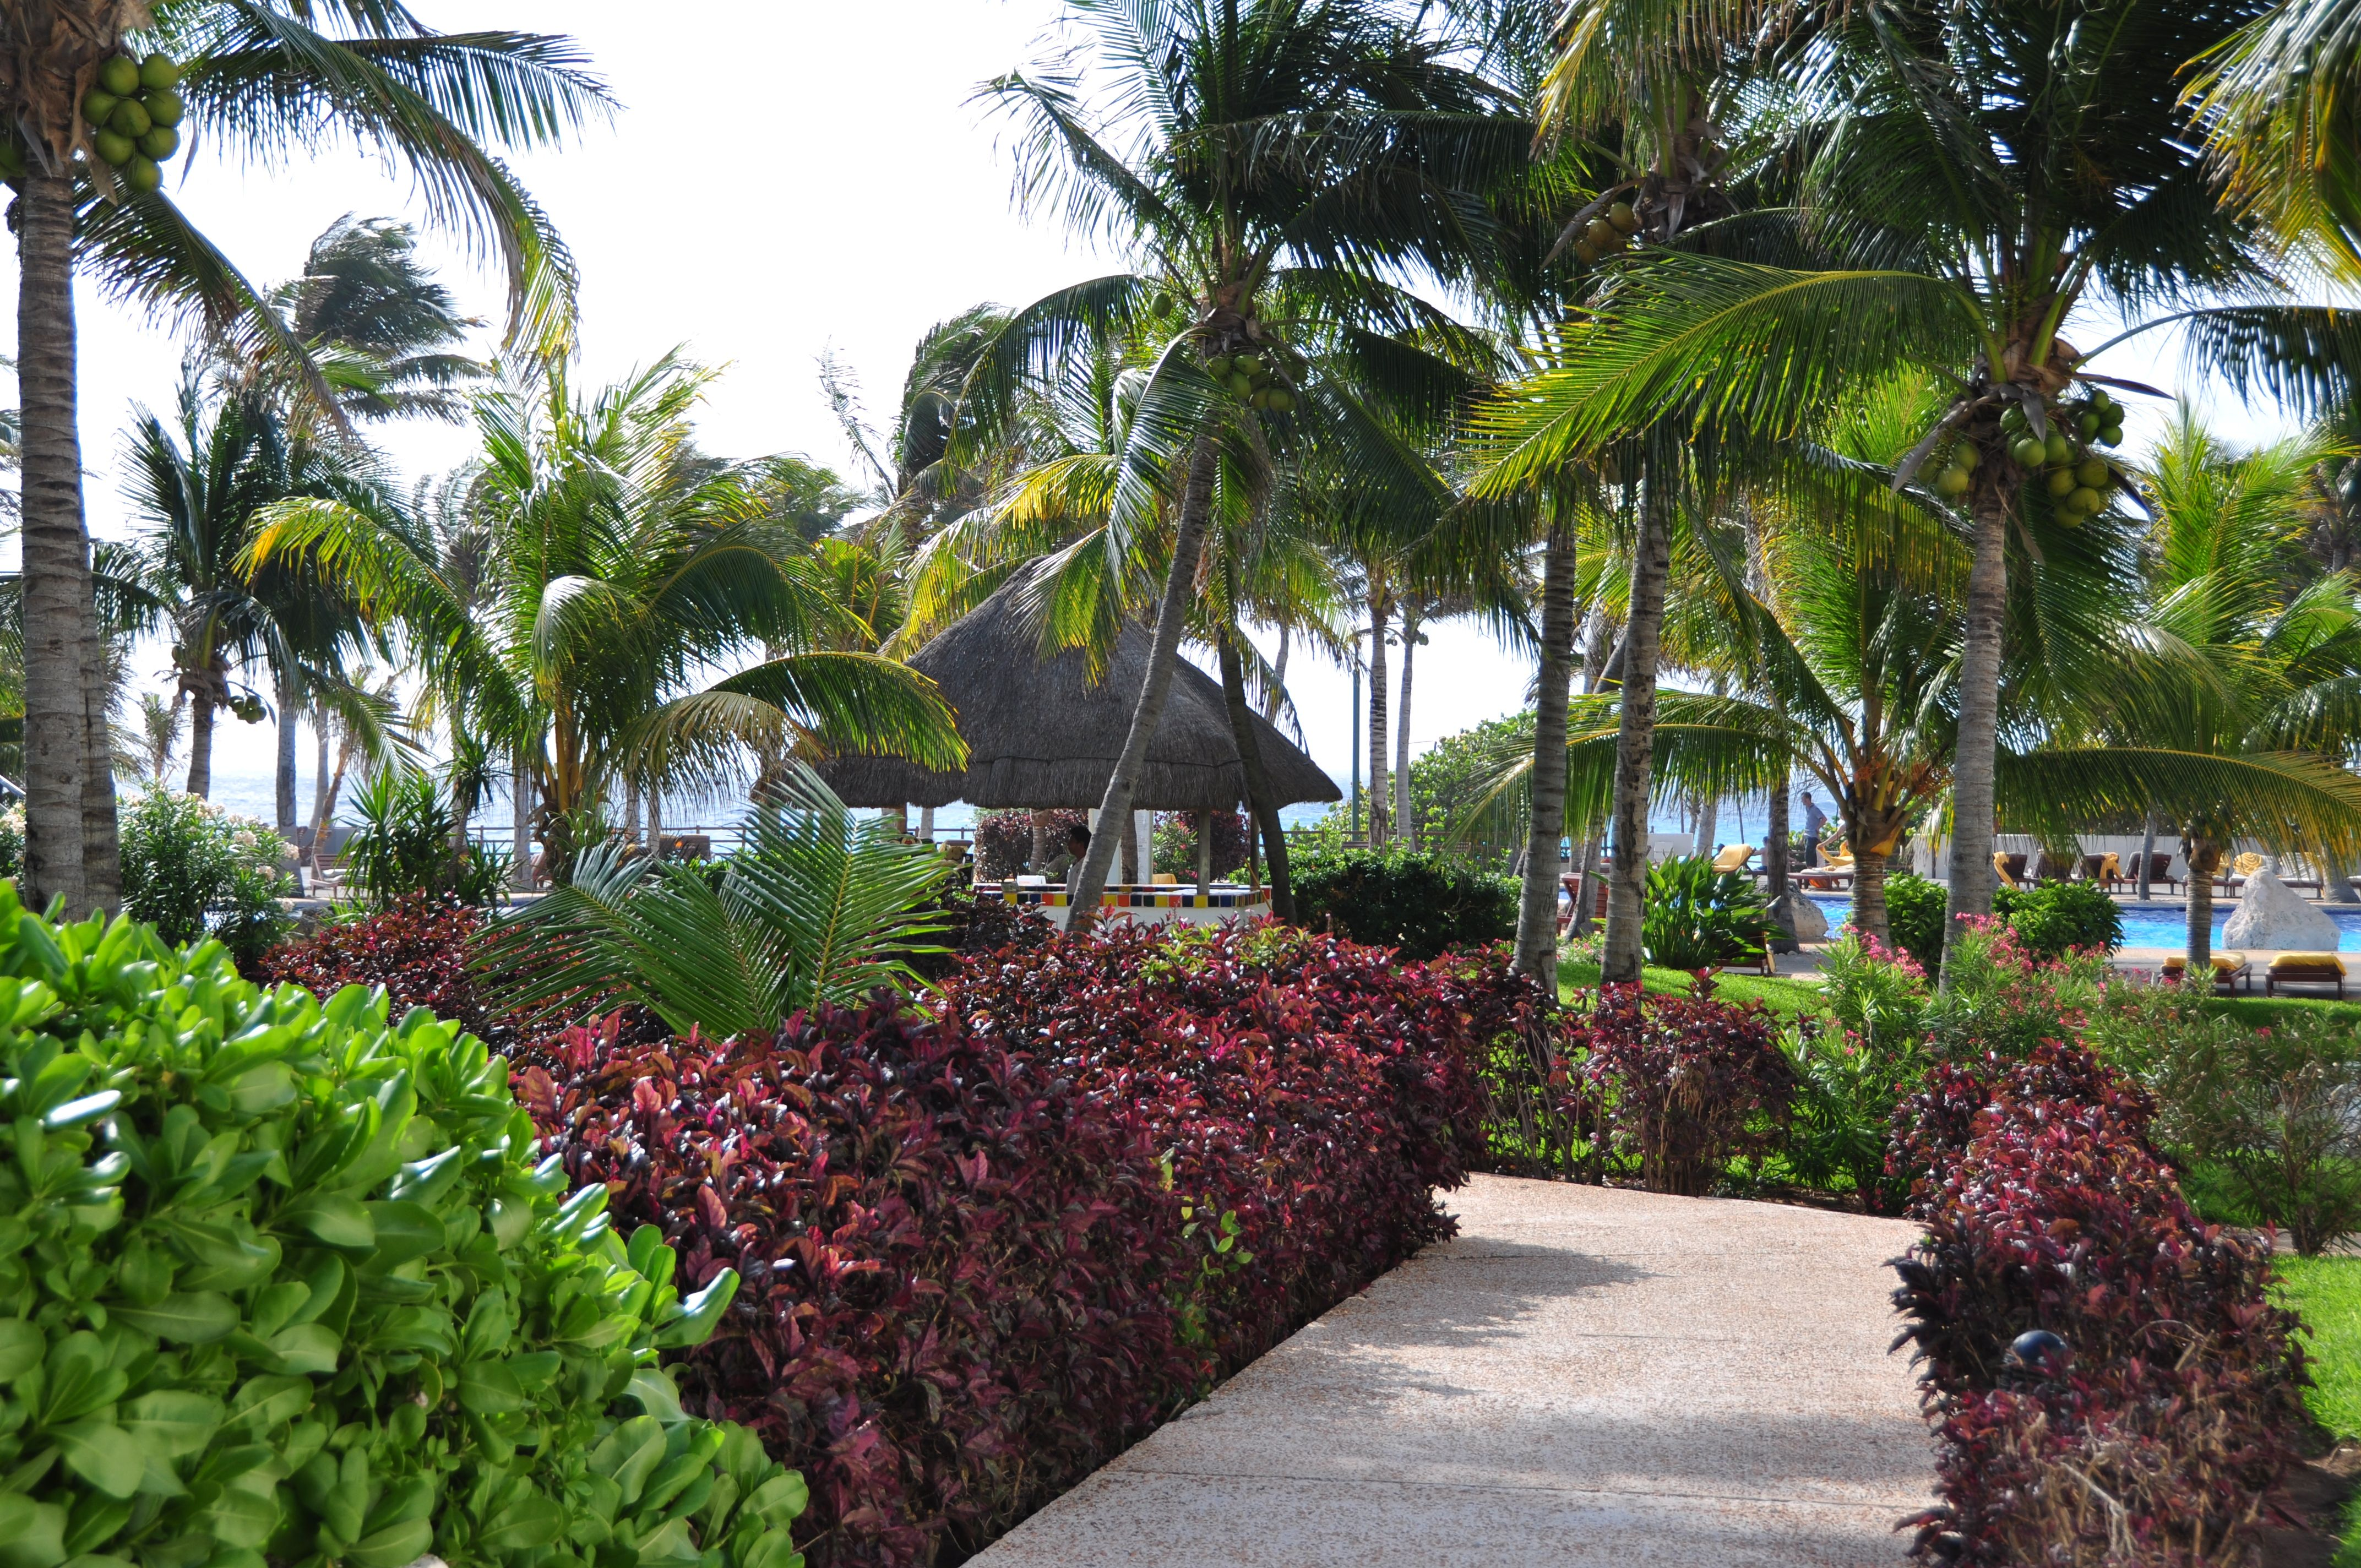 Come stroll through the beautifully landscaped gardens at Oasis Cancun with surprises around every turn.